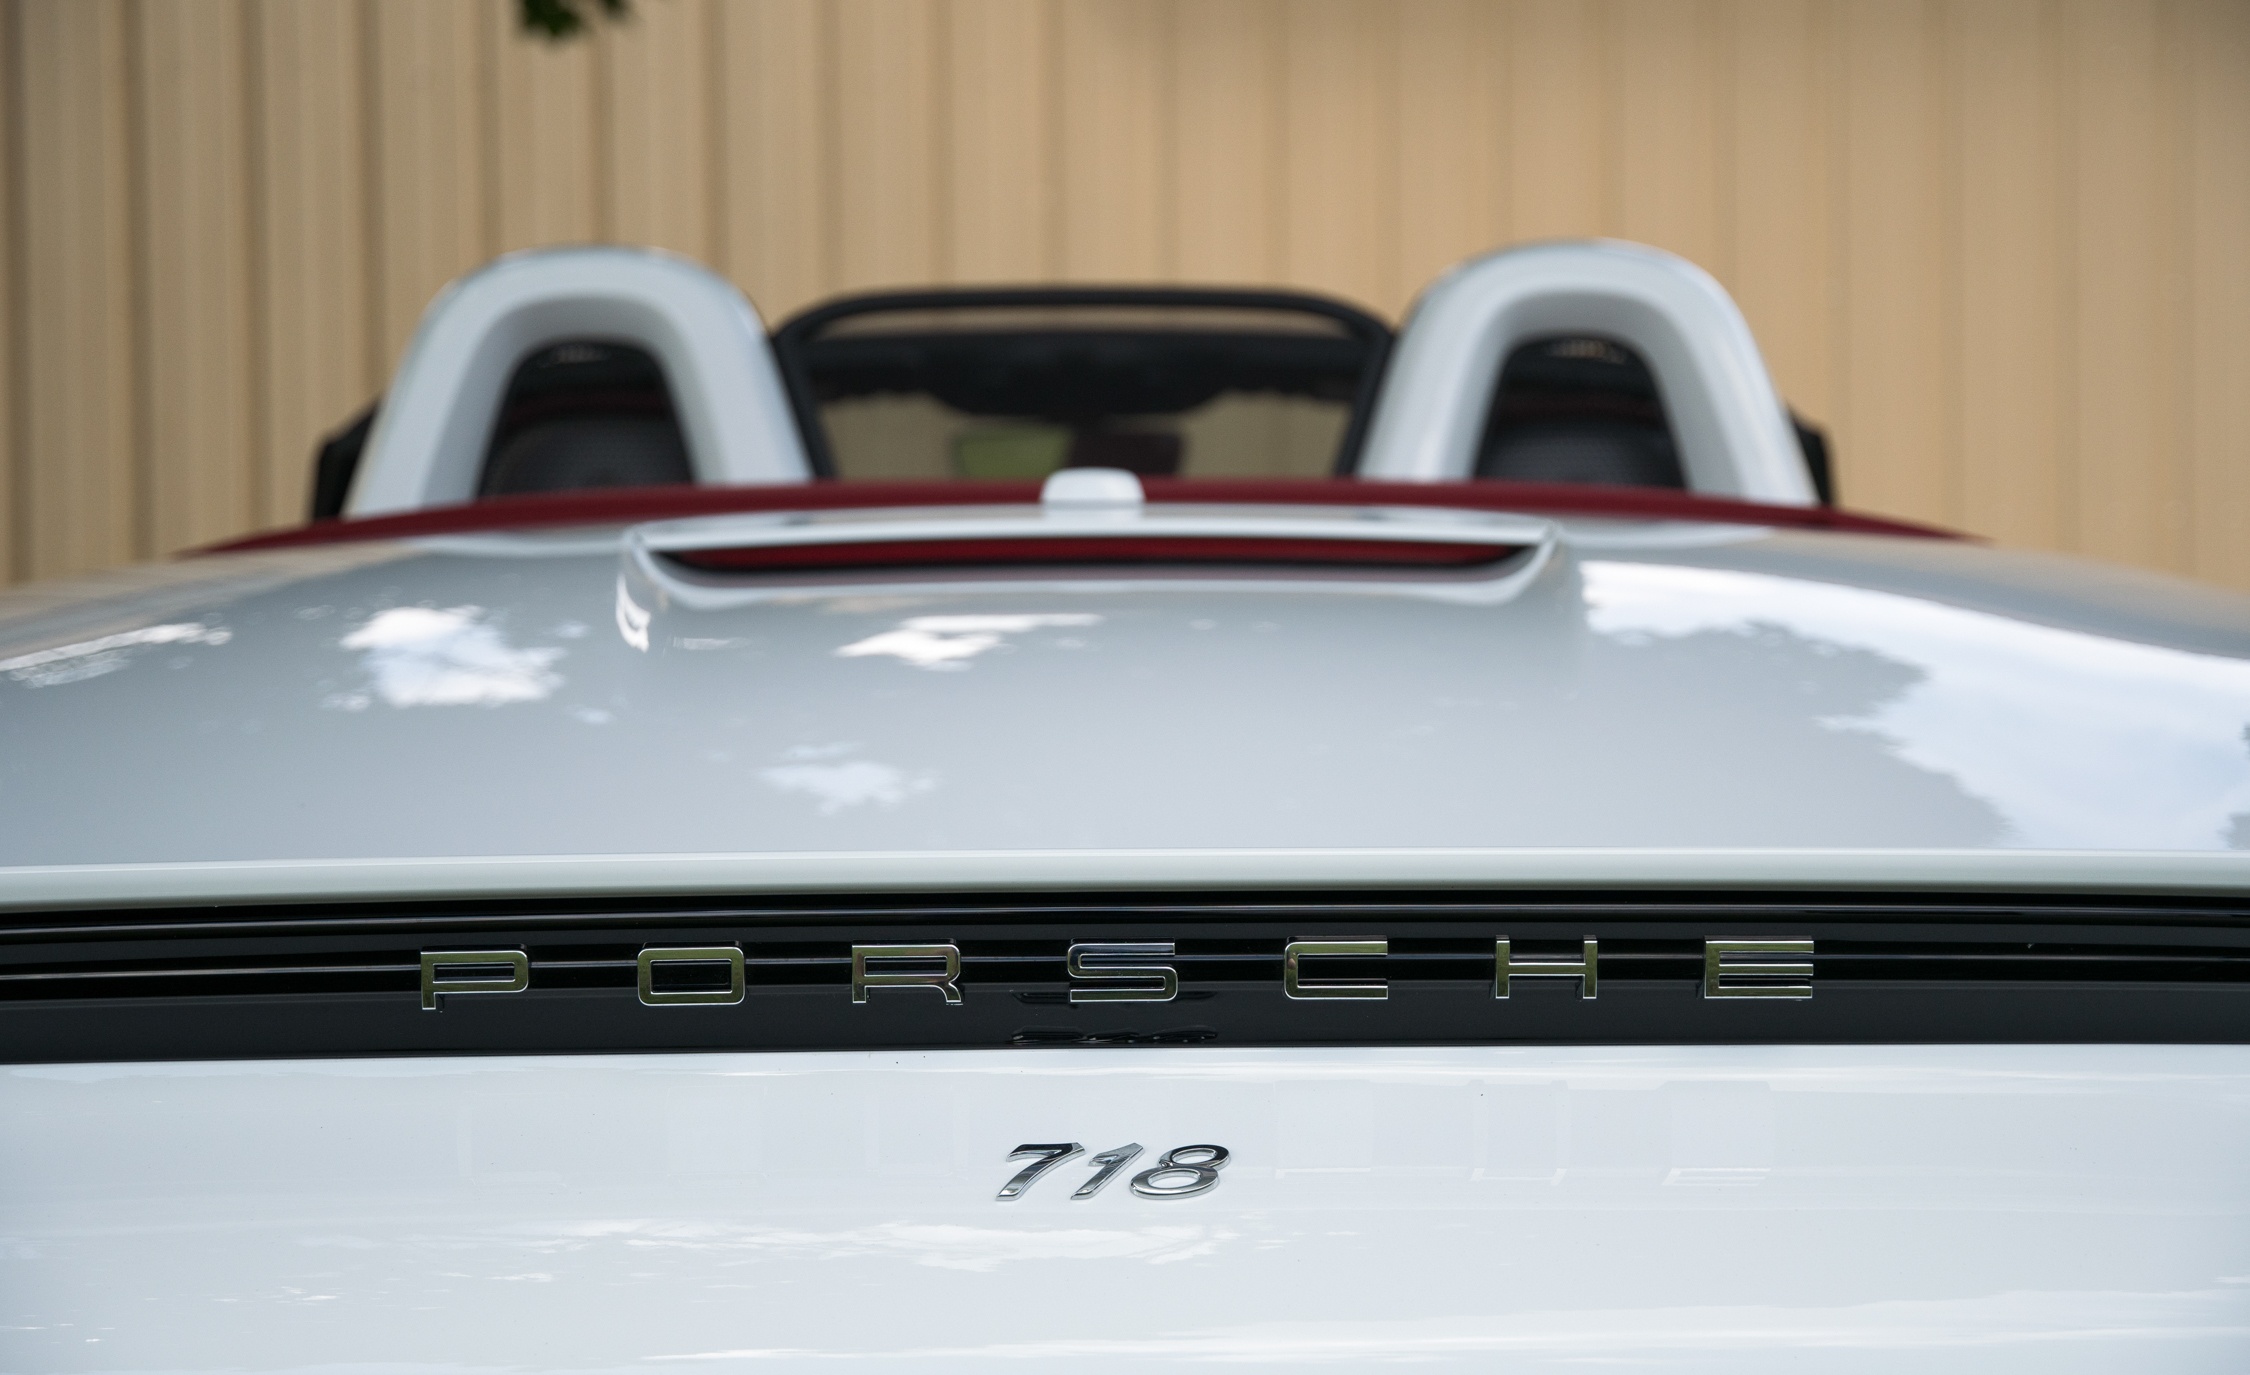 2017 Porsche 718 Boxster (View 41 of 71)